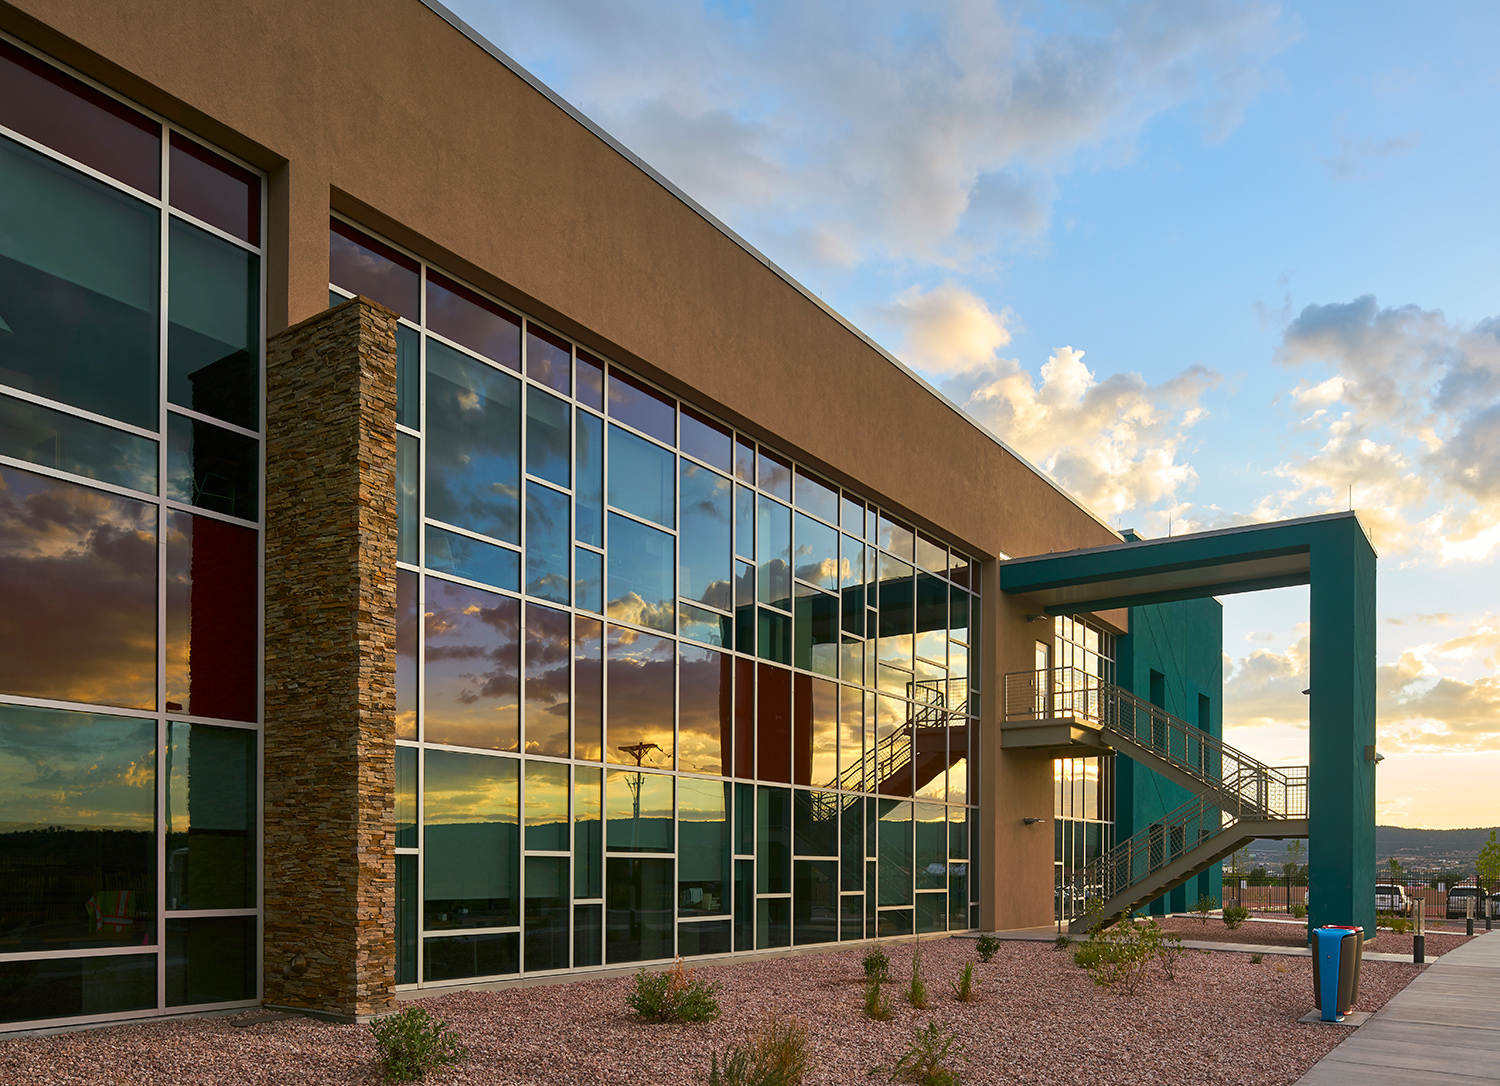 Exterior view of the Navajo Tribal Utility Authority Headquarters in Fort Defiance, Arizona.